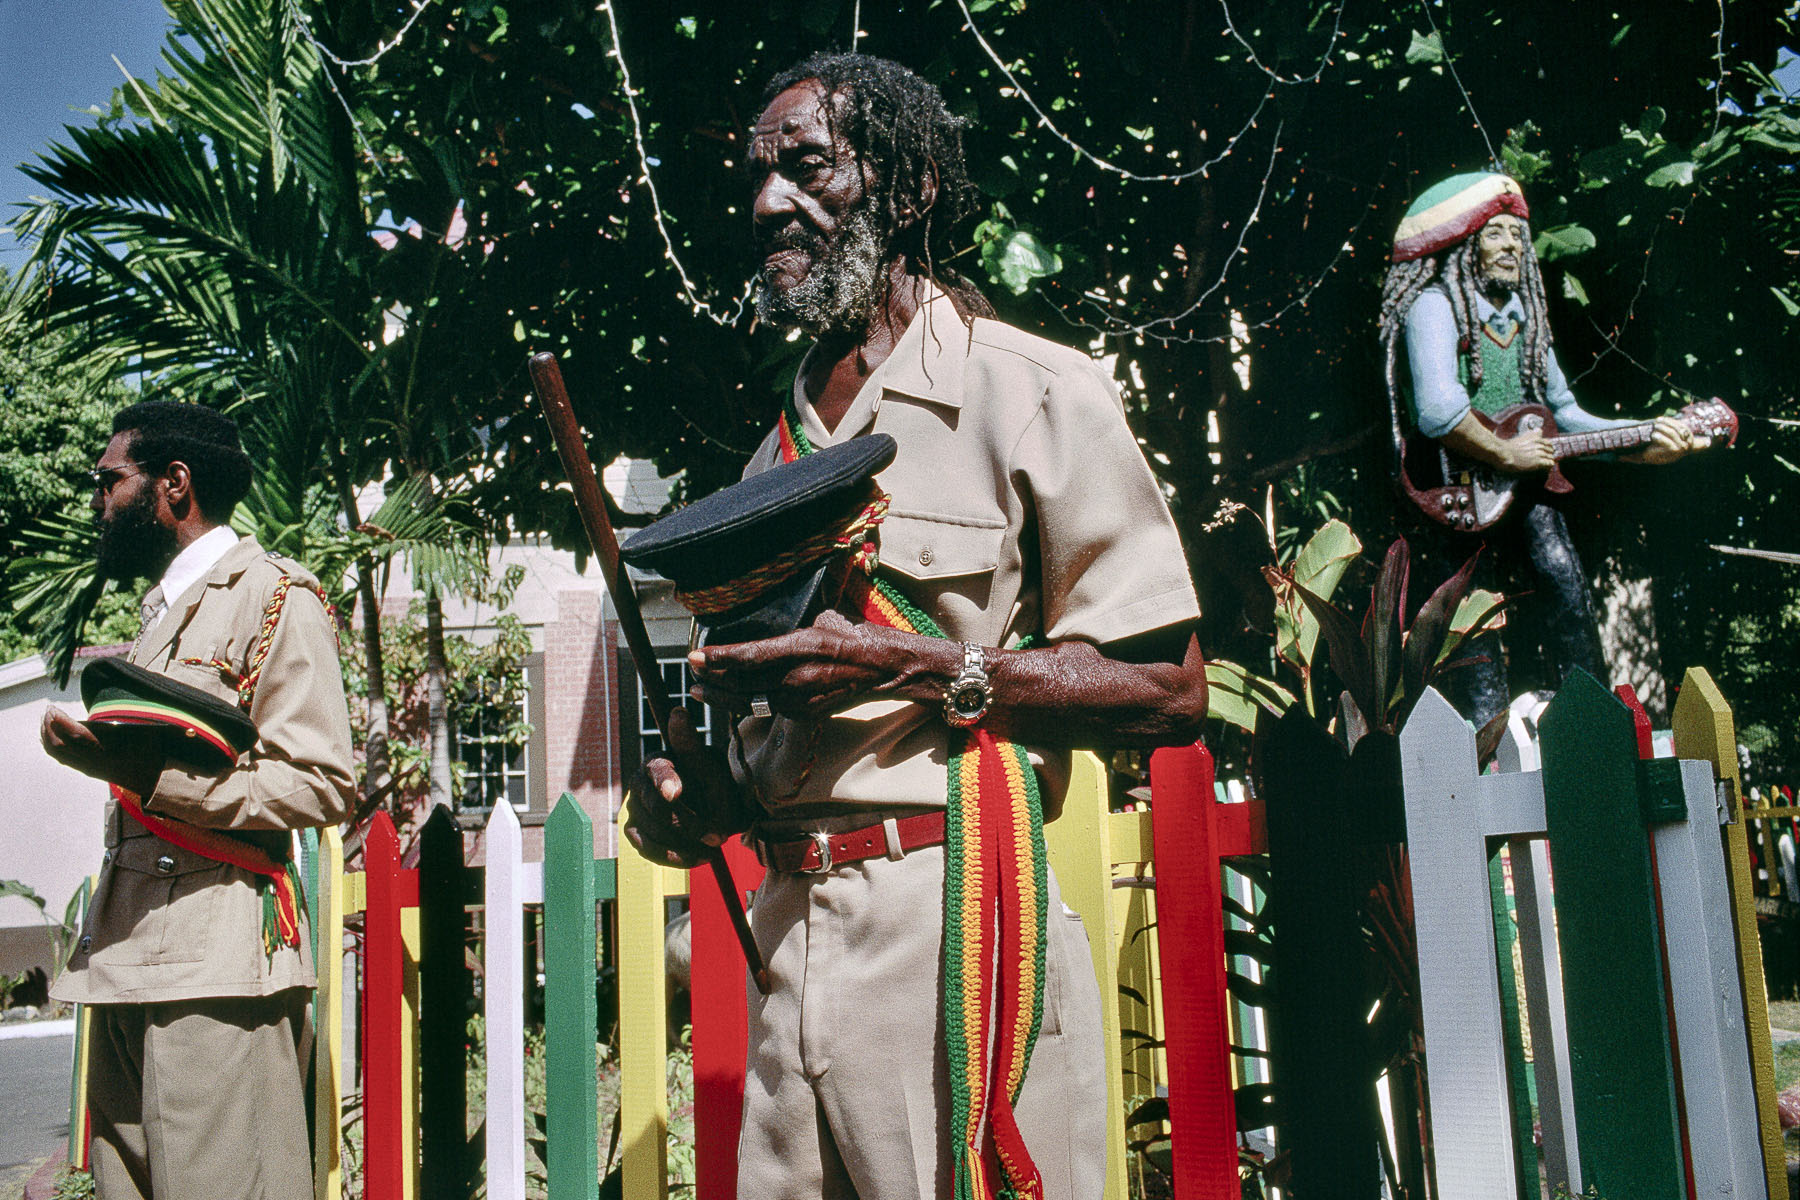 Commemoration to Bob Marley in his museum in January 2001